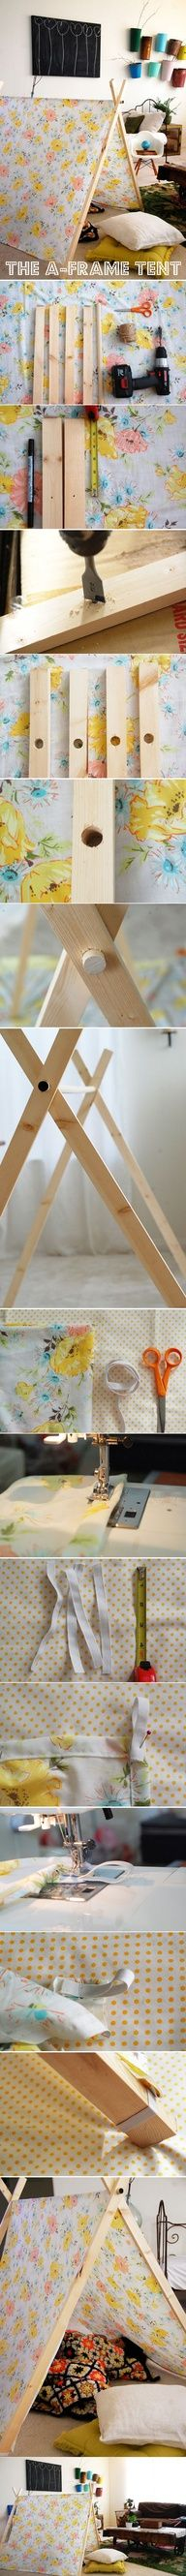 i·am·trend / D.I.Y. A-Frame Tent. Folds up neatly to store after the kiddos play fort in the living room :)